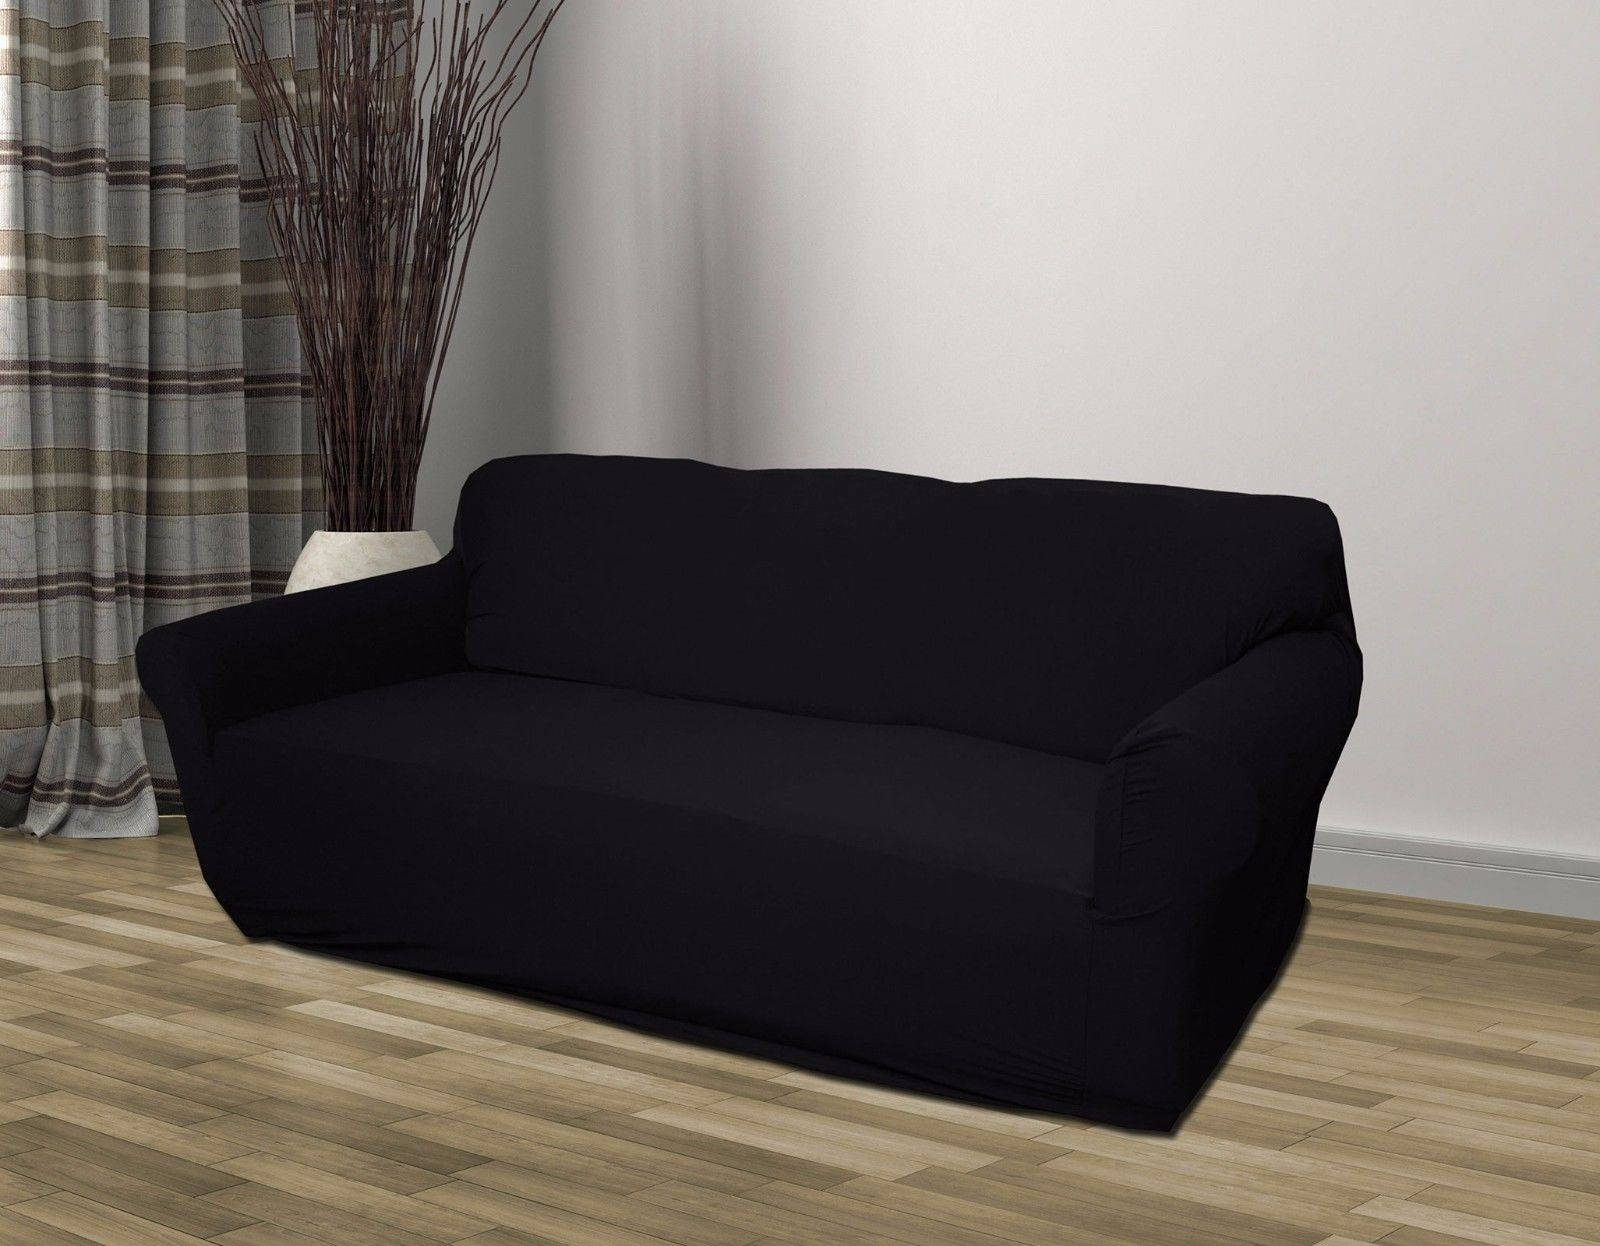 Black Jersey Sofa Stretch Slipcover, Couch Cover, Chair Loveseat intended for Black Slipcovers For Sofas (Image 2 of 30)